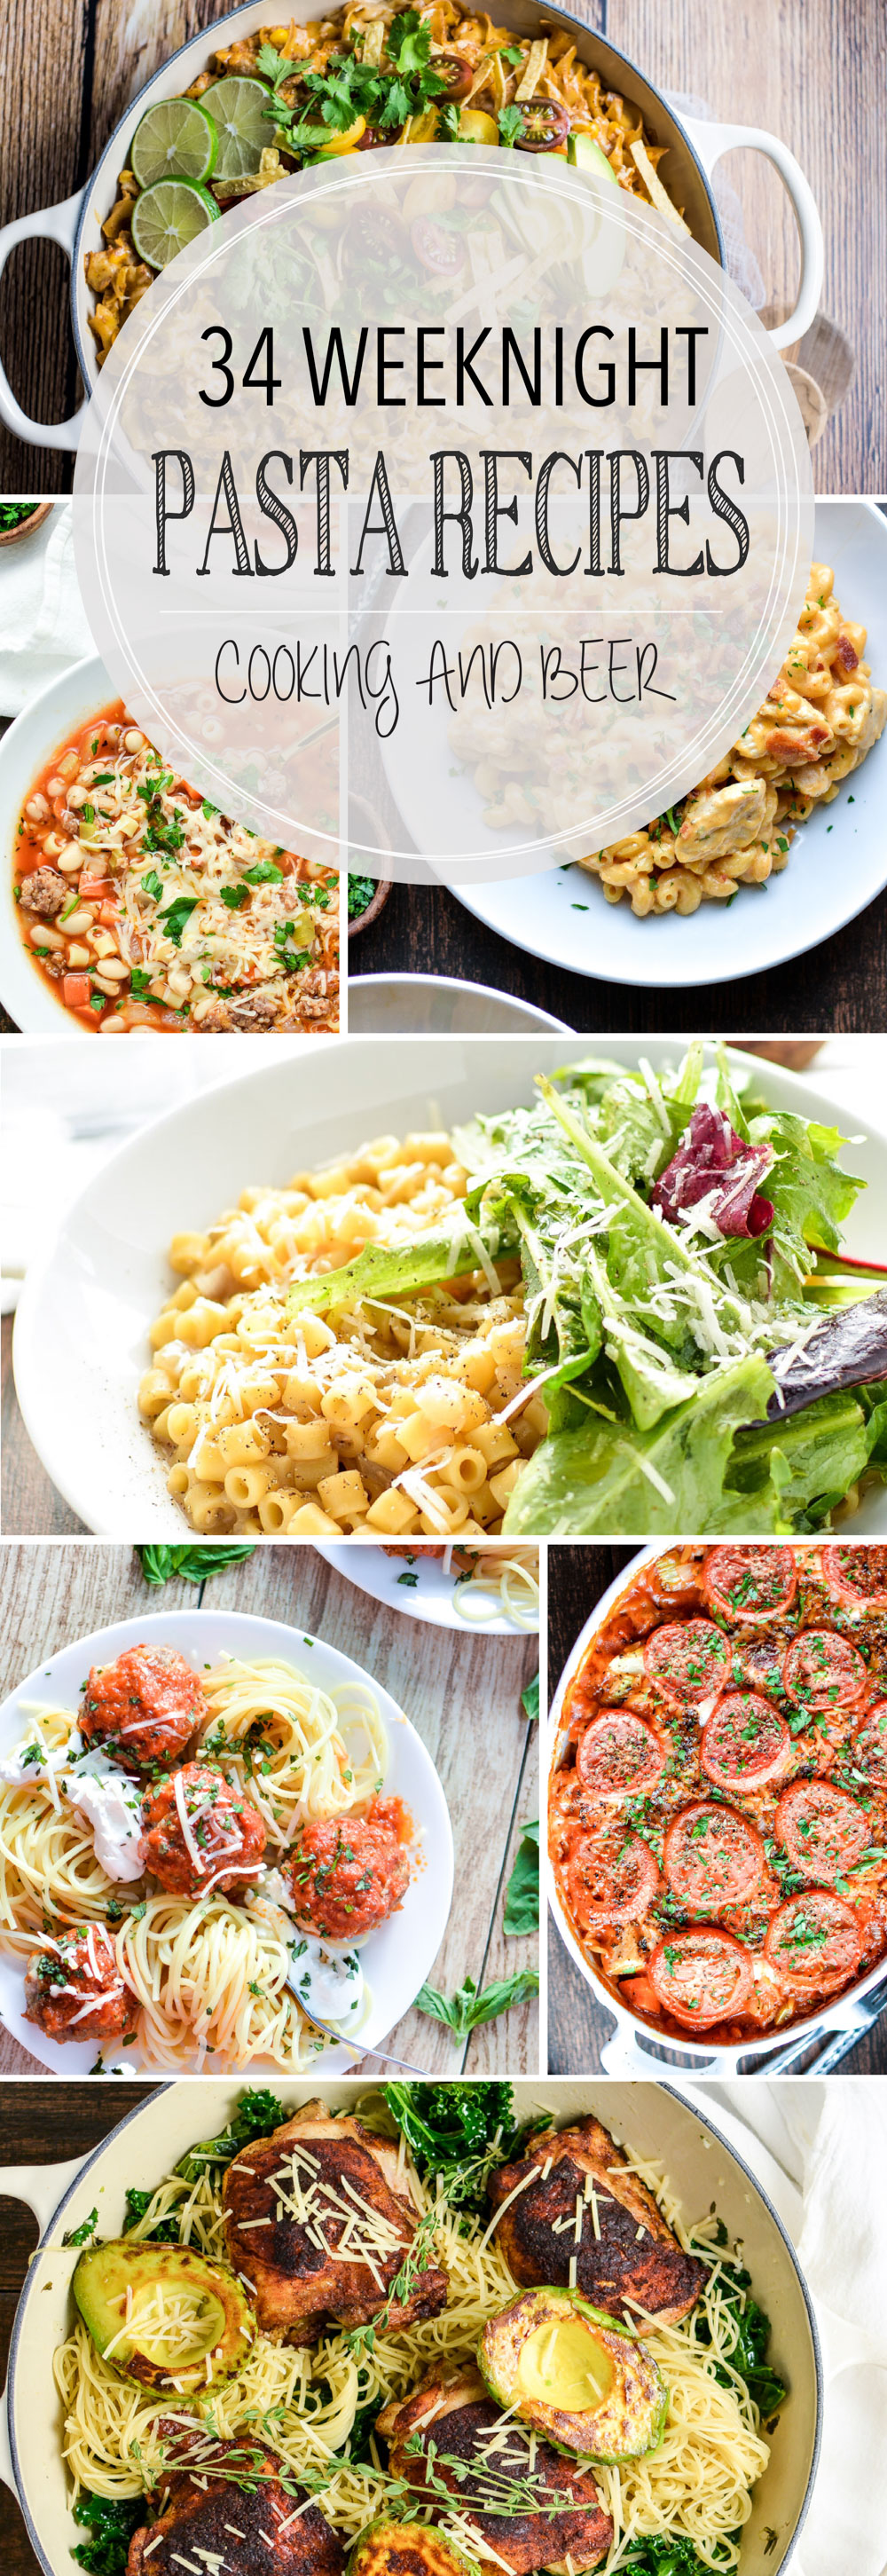 From casseroles to soup and from 5-ingredient to vegetarian, here are 34 family-friendly weeknight pasta recipes to get you through those busy weeks!